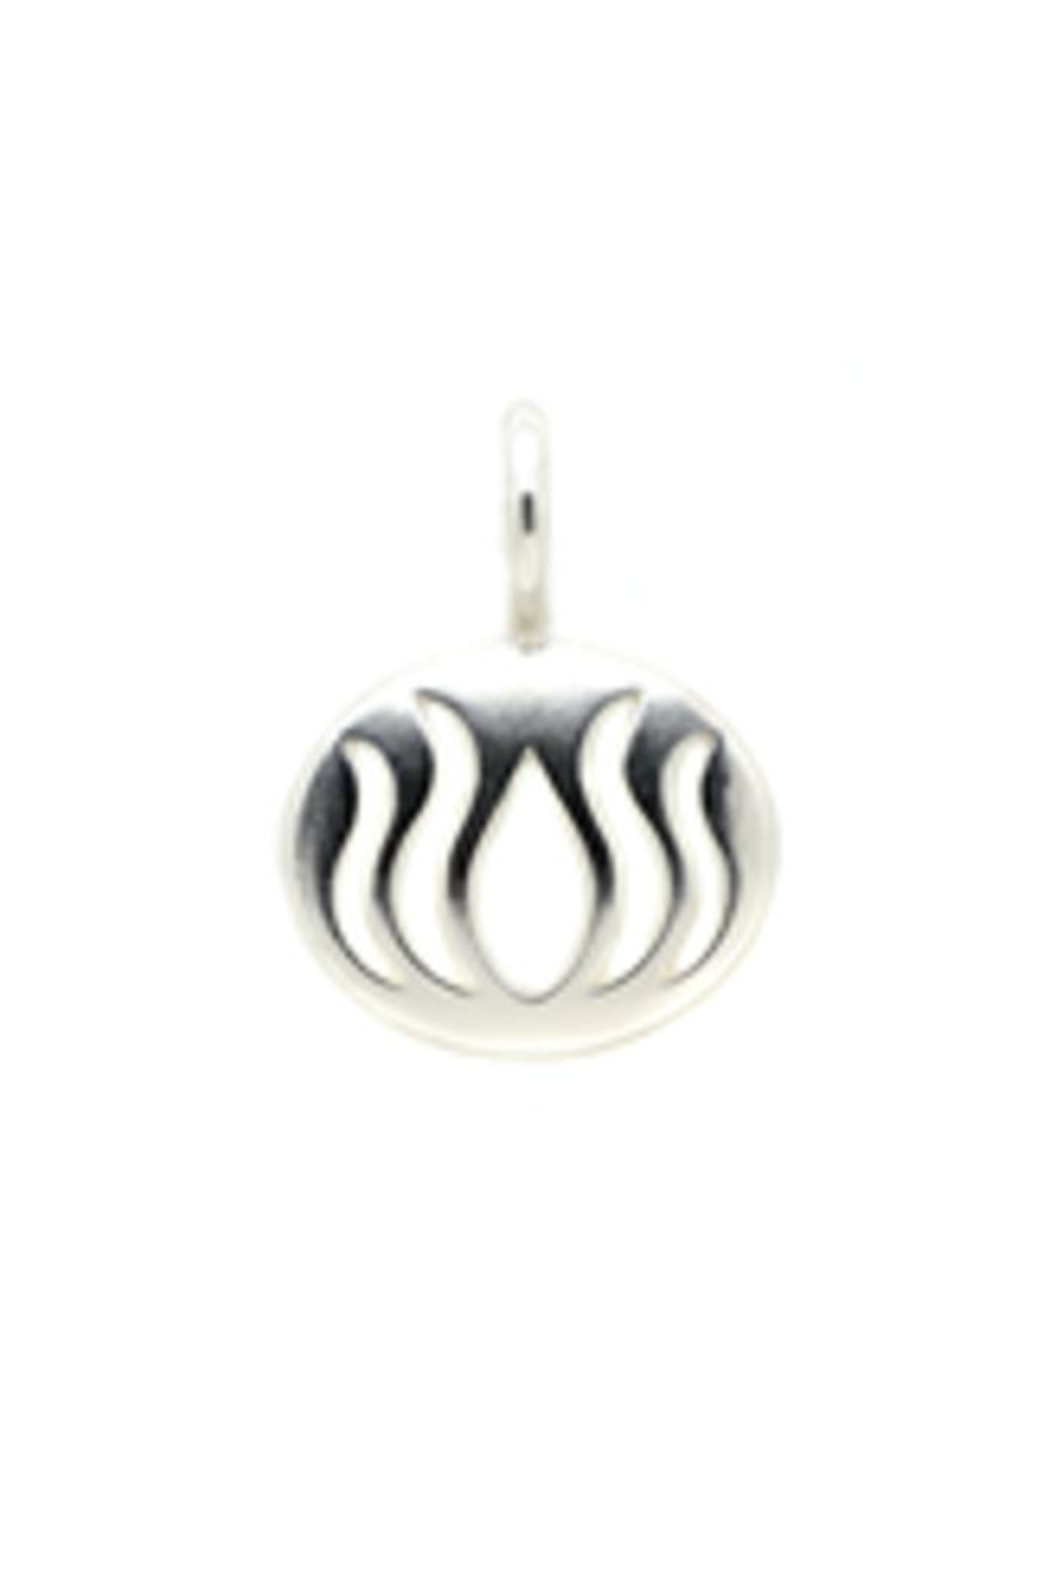 Lucky Feather Cute Lotus Flower From Maryland By Artisans Gallery